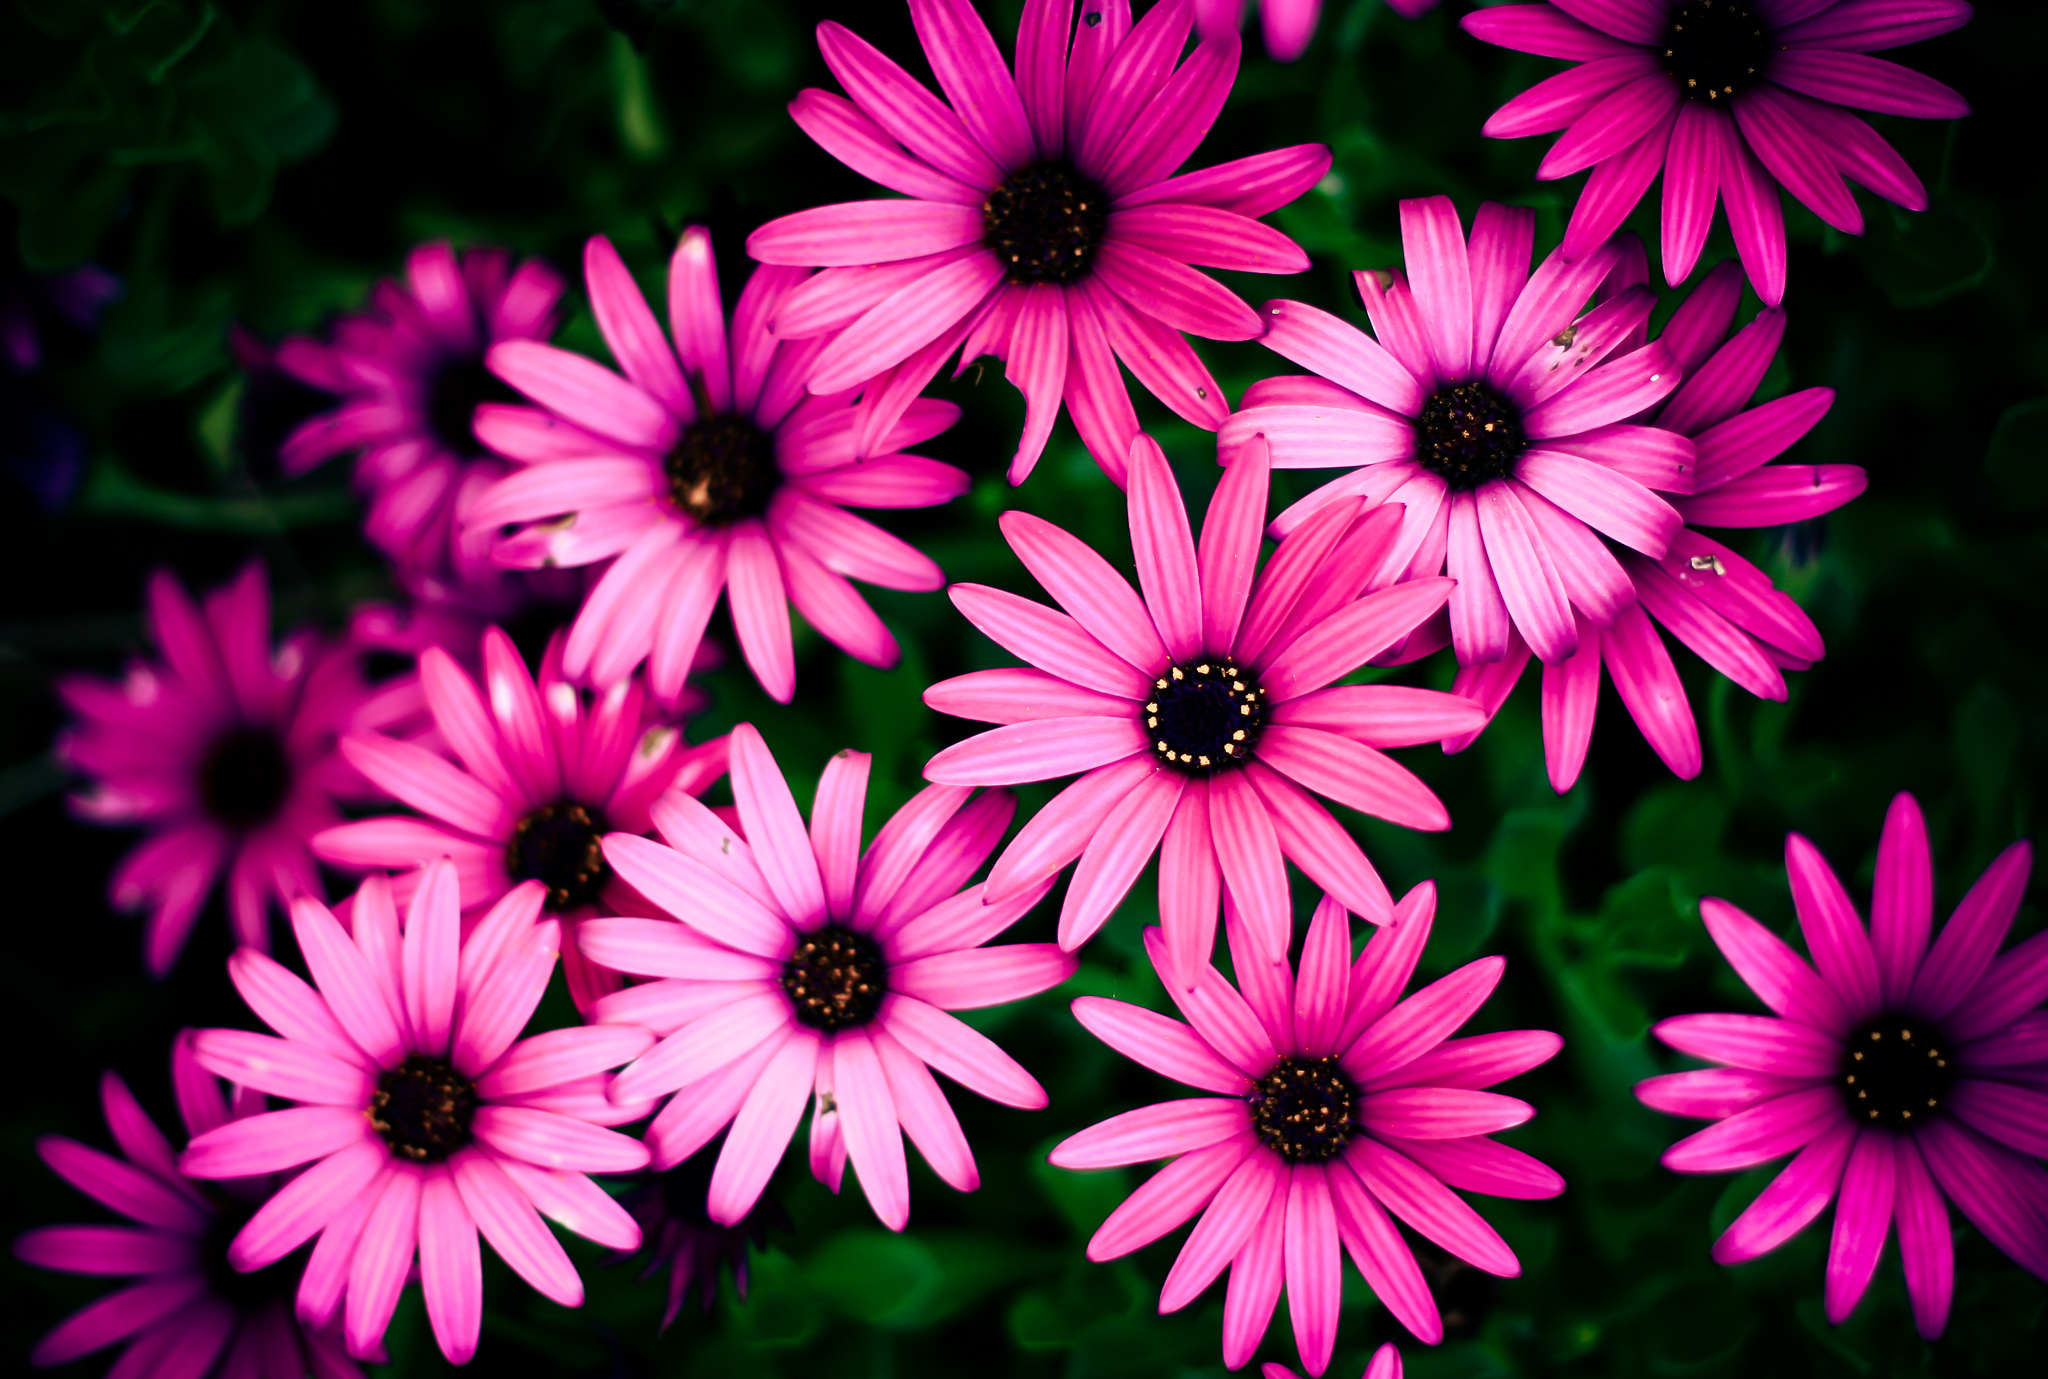 401 Daisy Hd Wallpapers Background Images Wallpaper Abyss